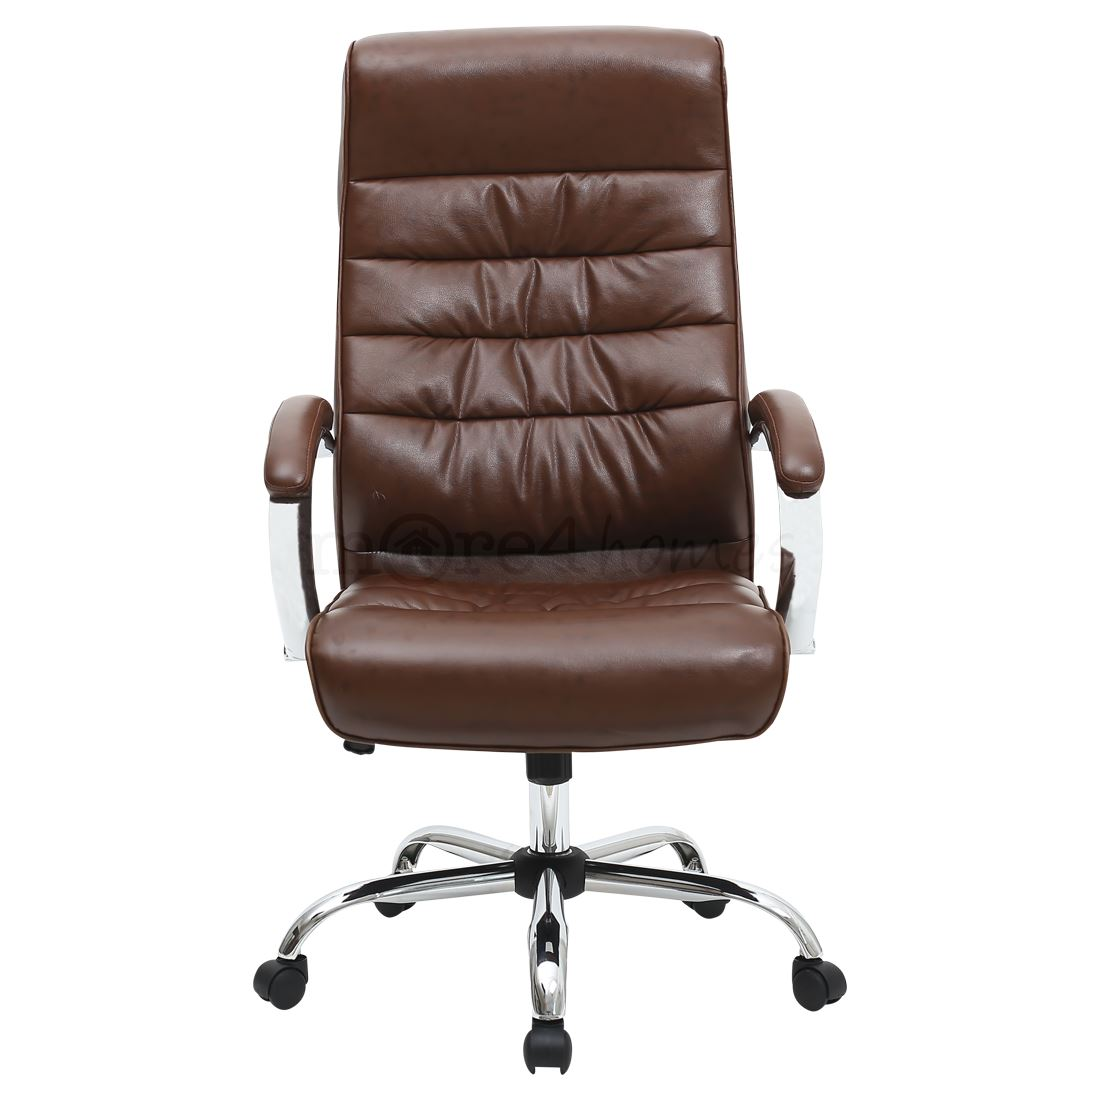 Mexico premium high back executive leather office chair for Sillones ejecutivos para oficina